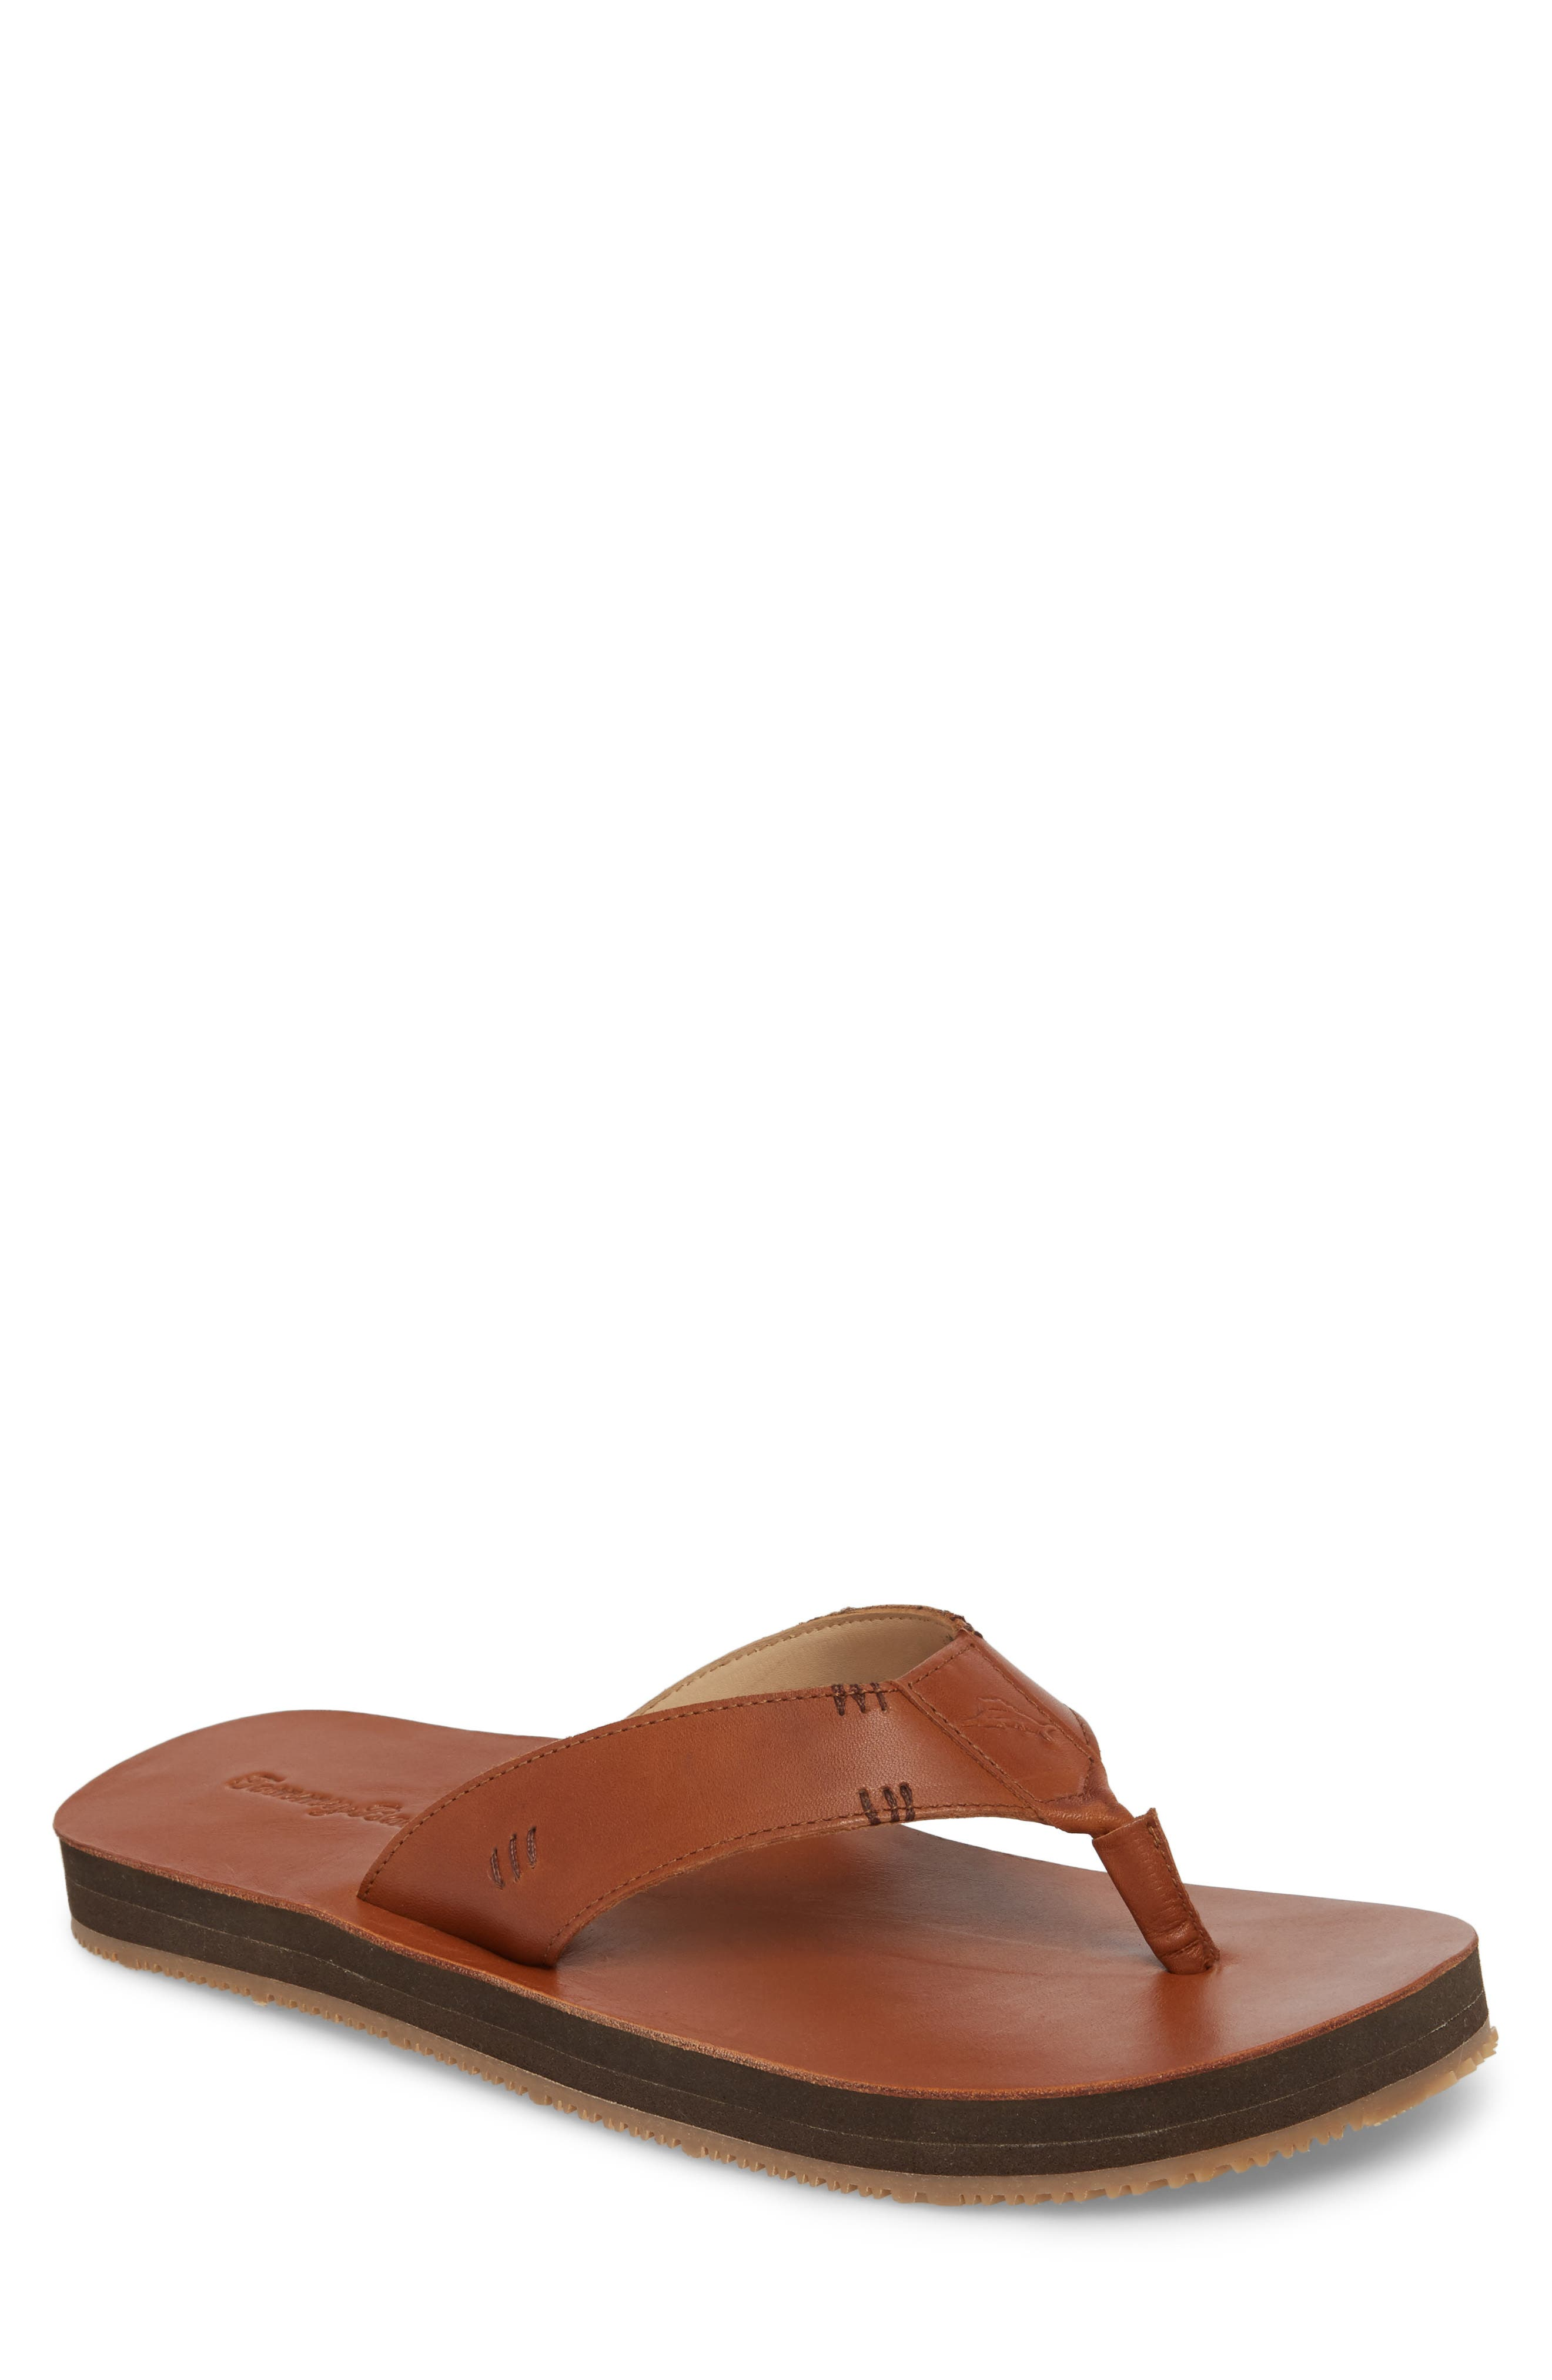 Adderly Flip Flop,                             Main thumbnail 1, color,                             Tan Leather